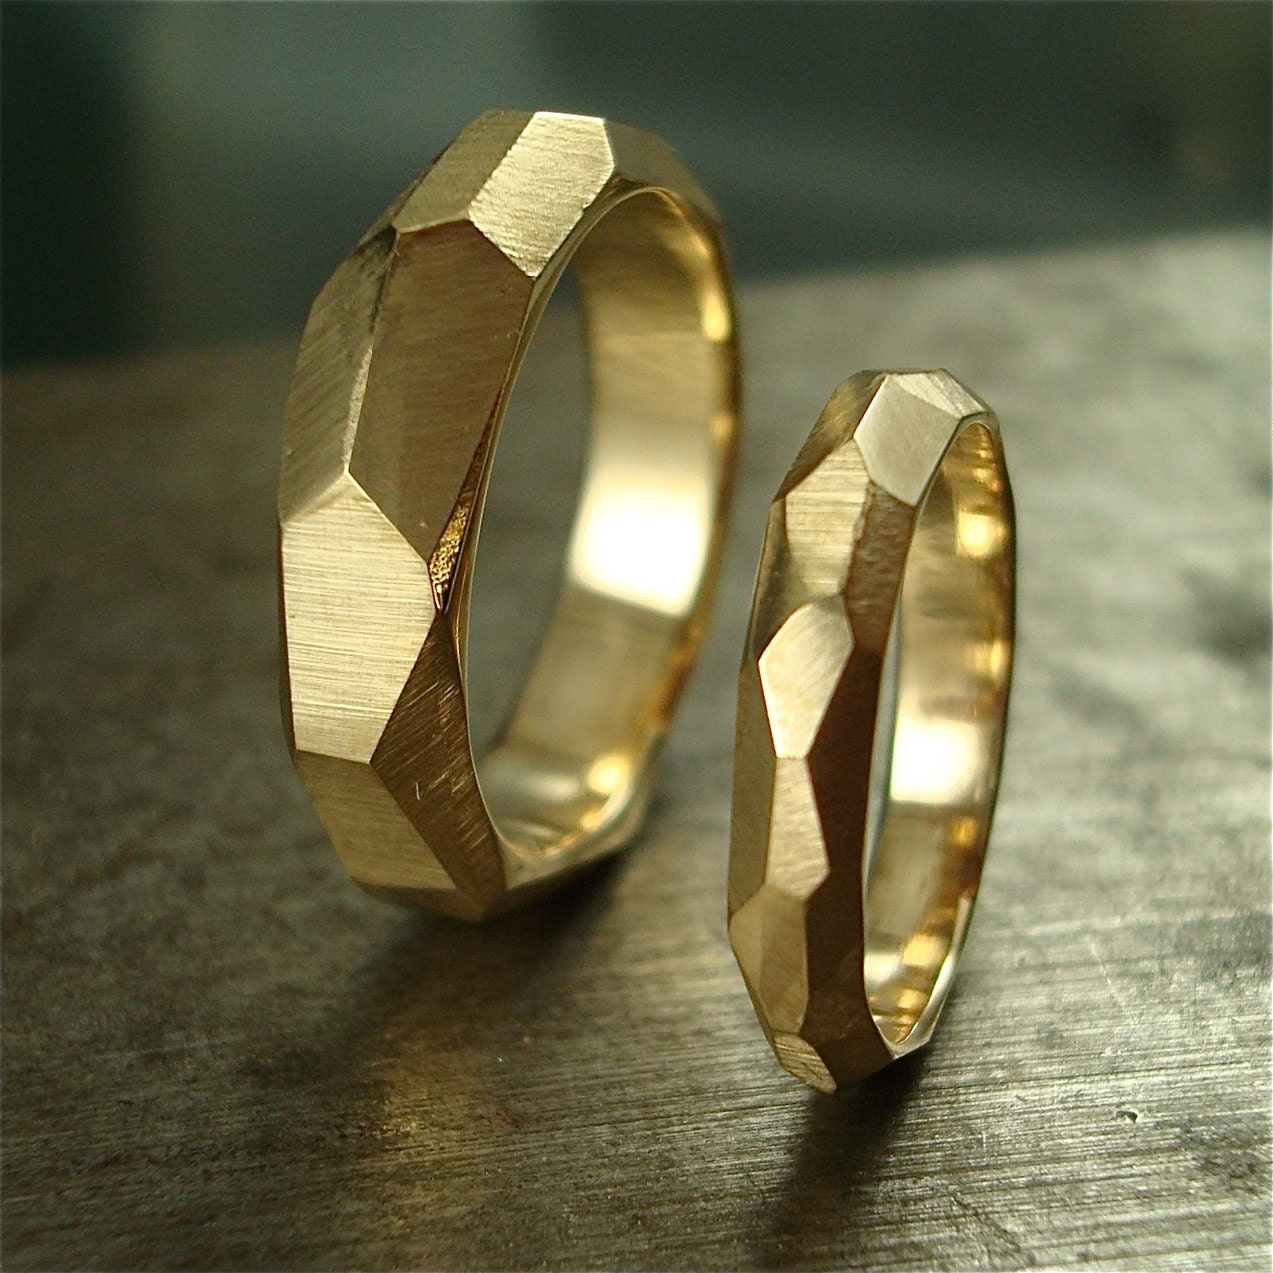 14k gold Chiseled Ring Set - Made to Order - daniellejewelry